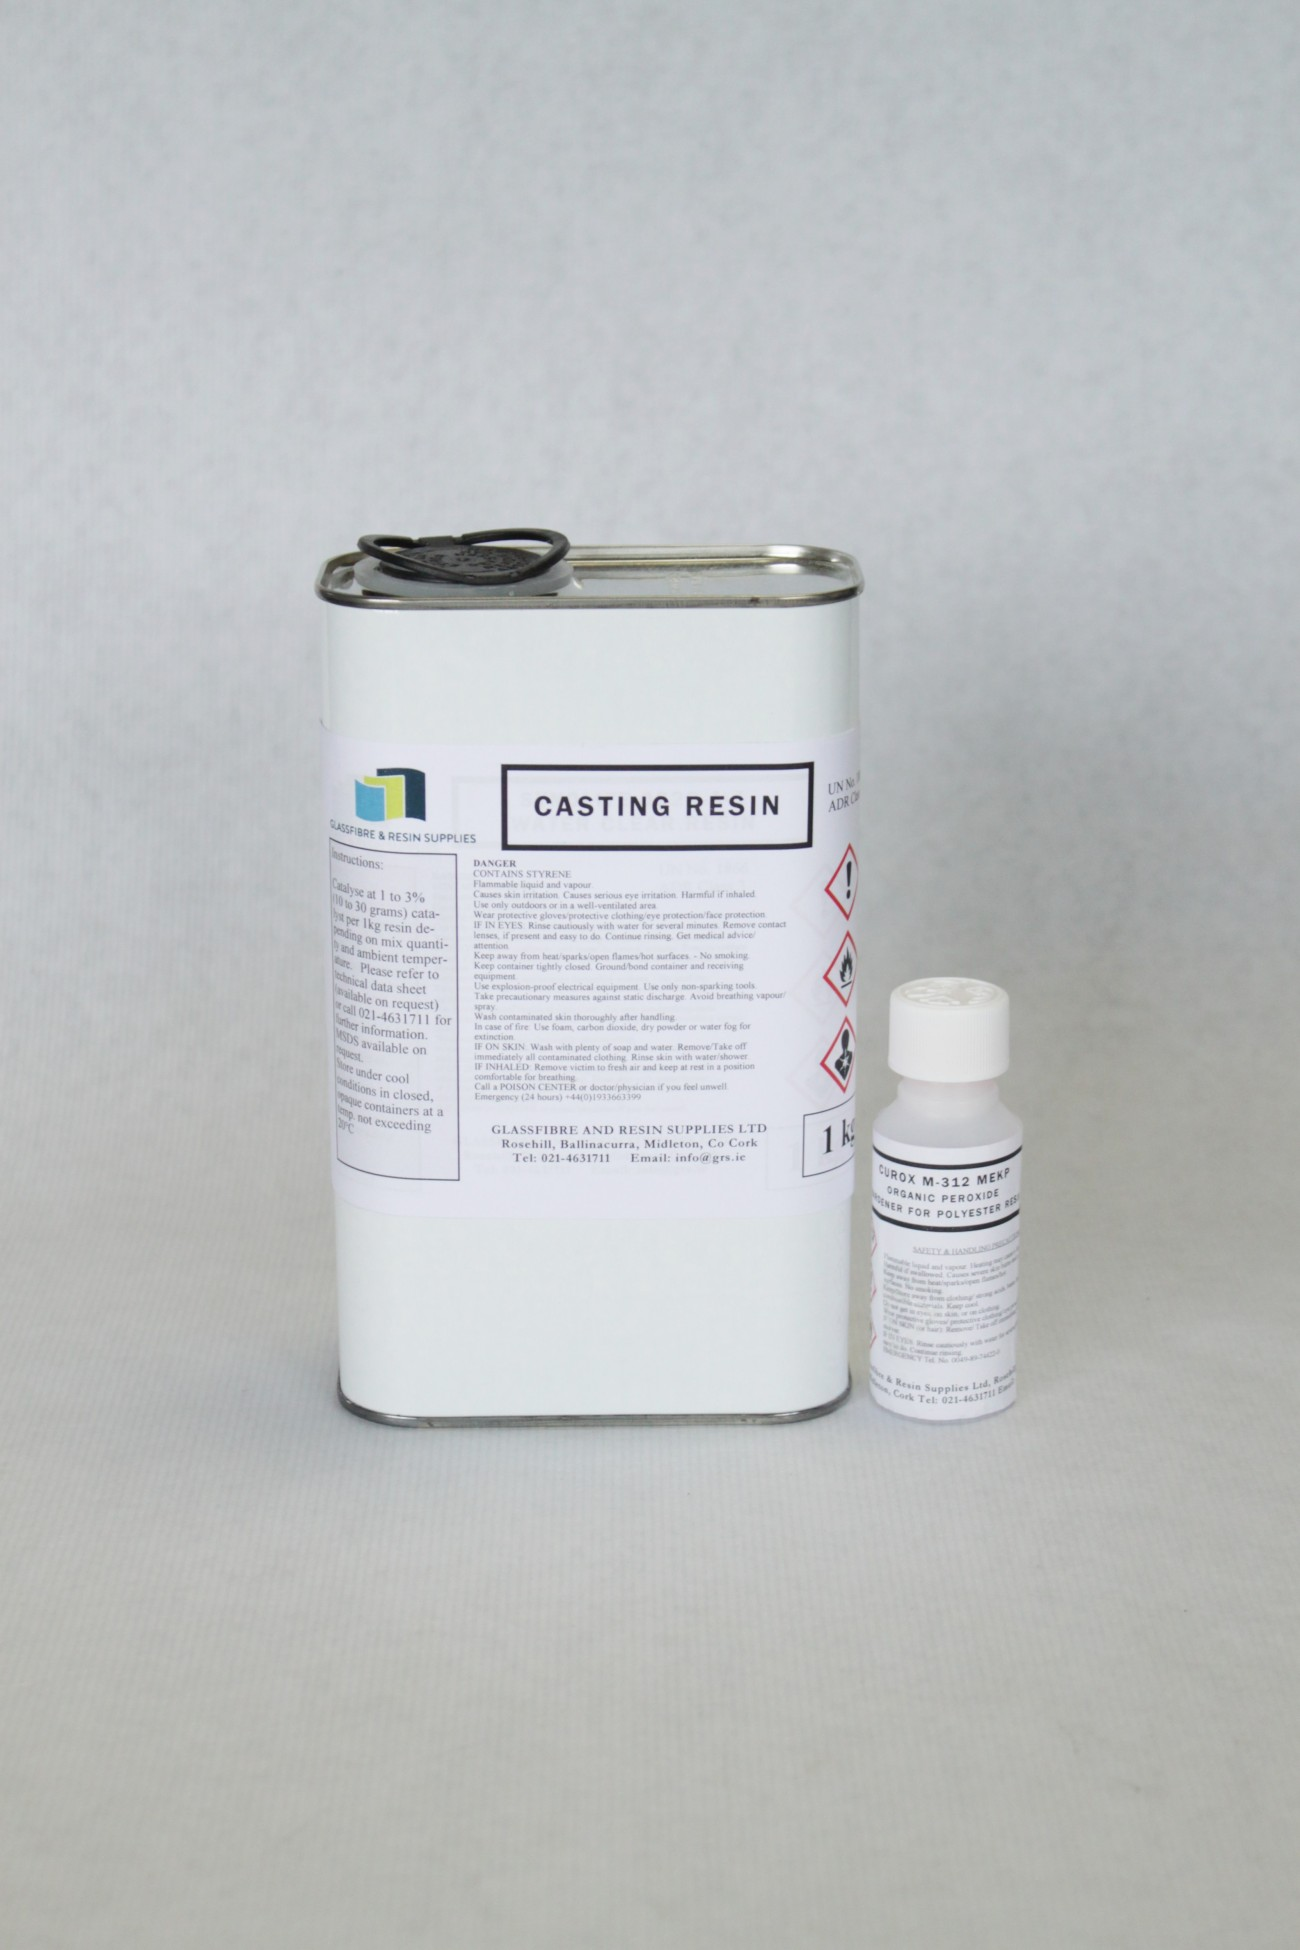 Standard Casting Resin Glassfibre And Resin Supplies Ltd